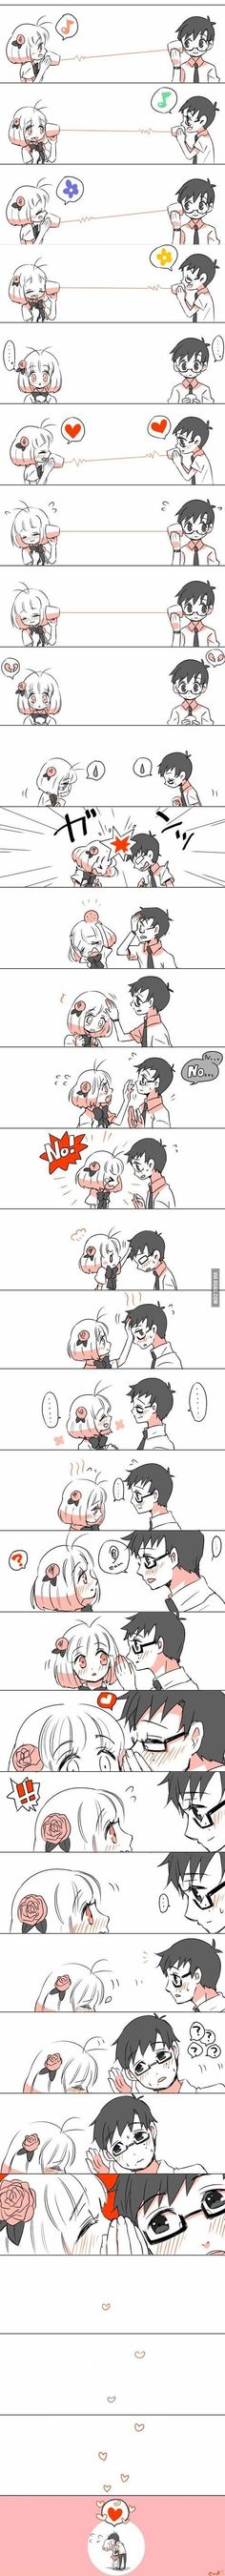 Communication is key to a good relationship - 9GAG